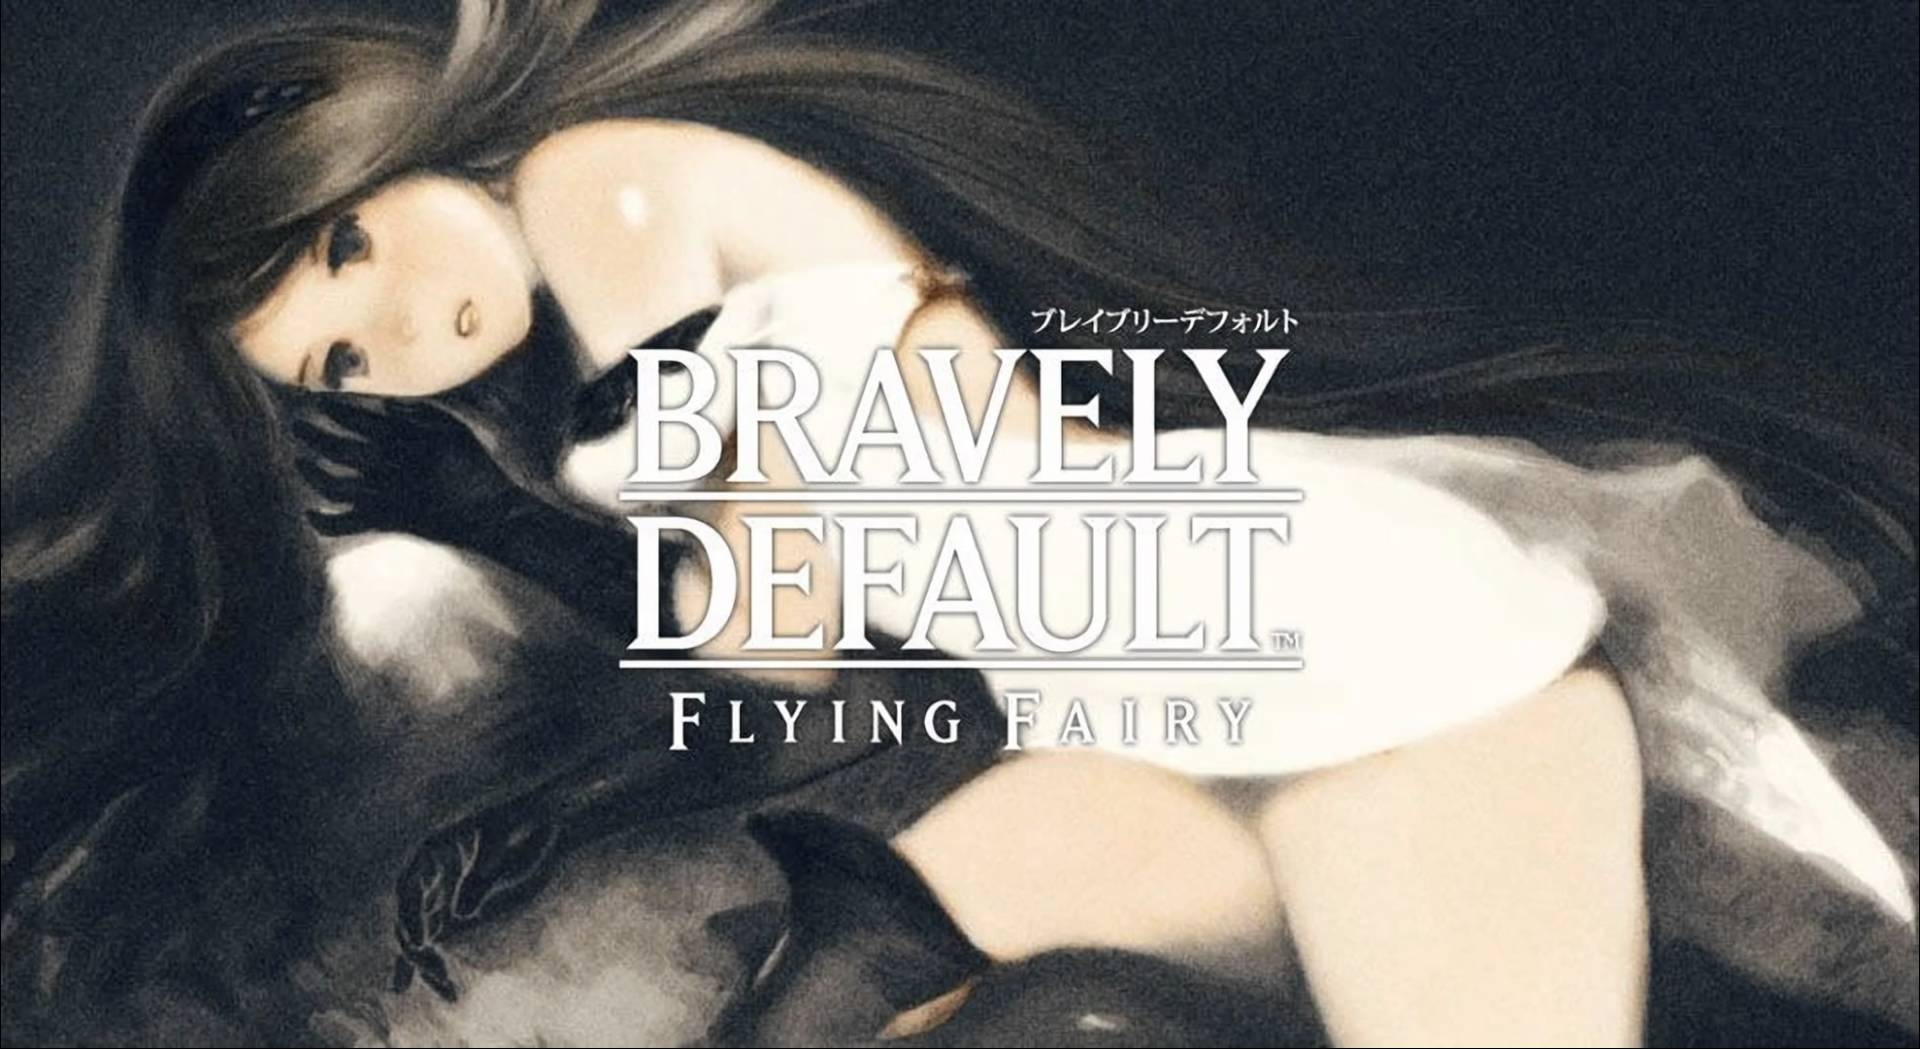 Bravely Default is a bit sexier in Japan.